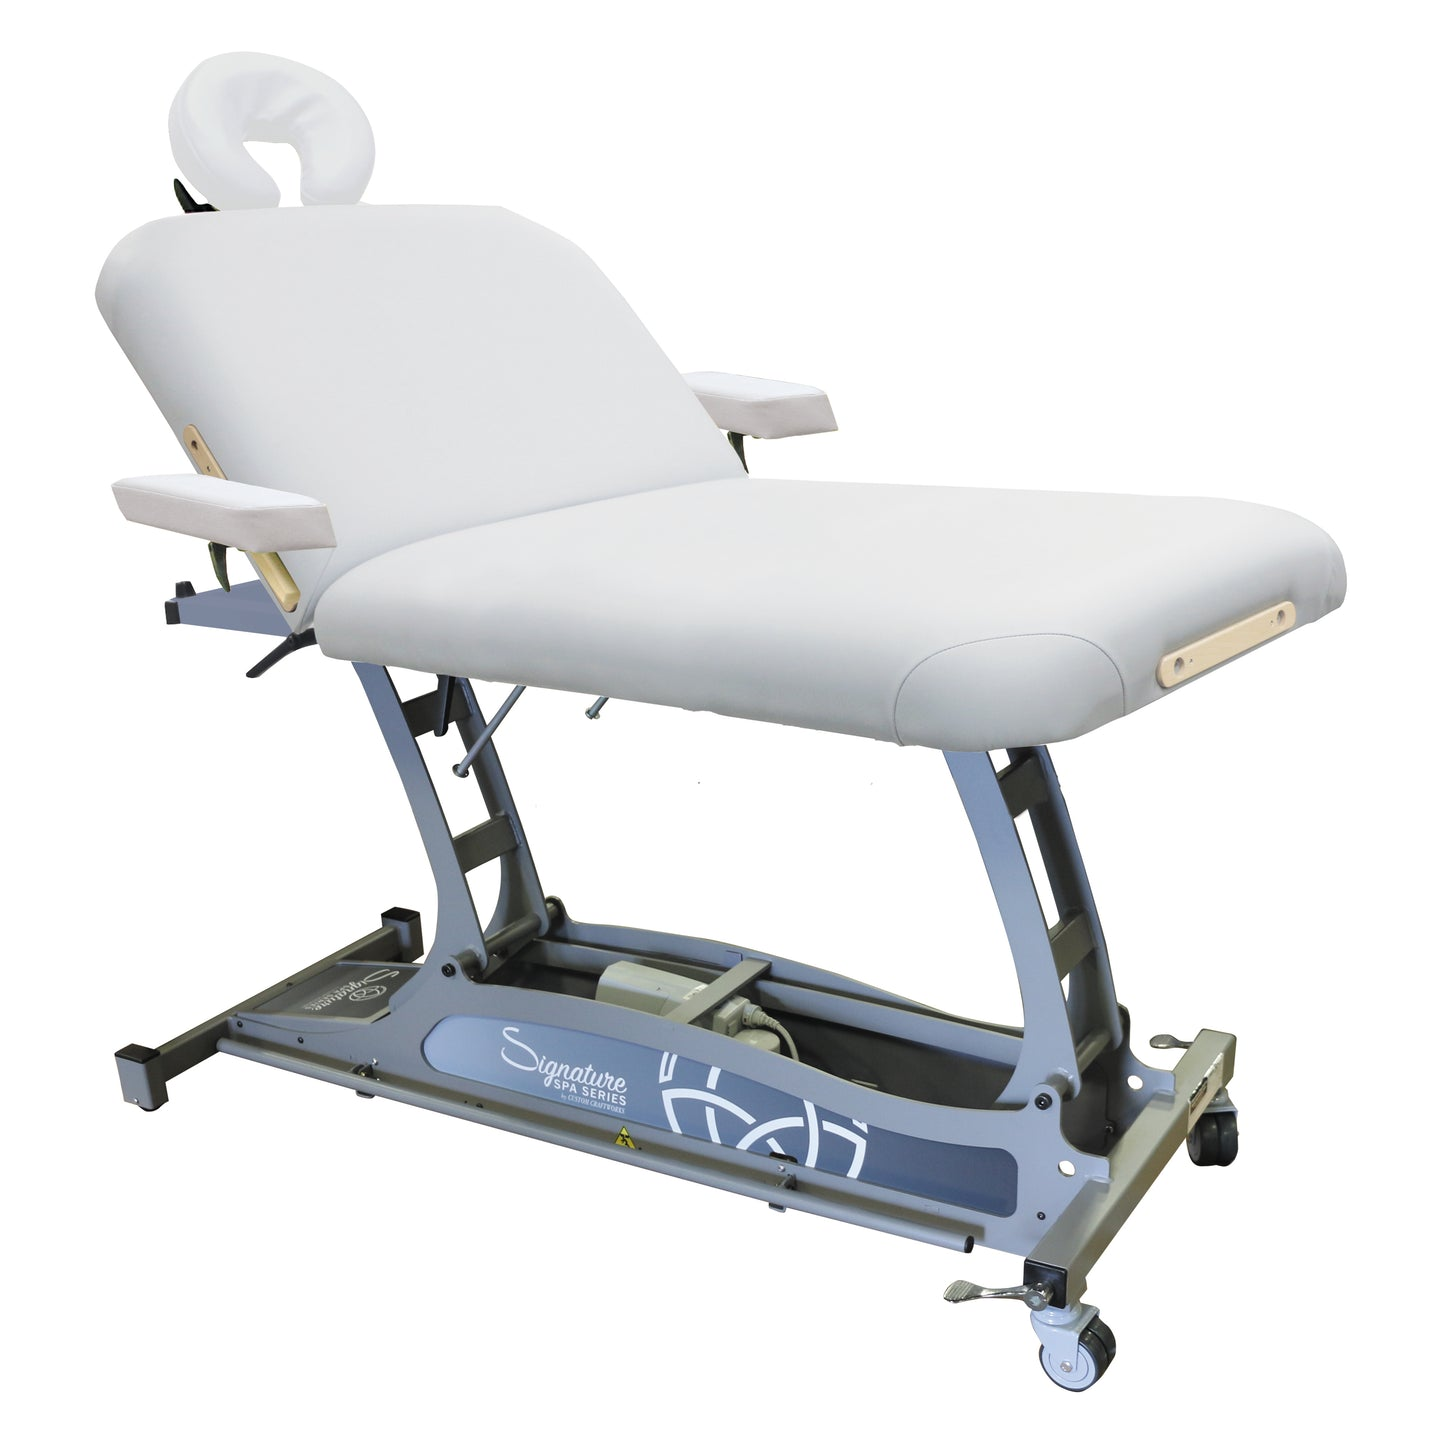 Signature Spa Series by Custom Craftworks - Hands Free Lift Back Electric Massage Table - Superb Massage Tables